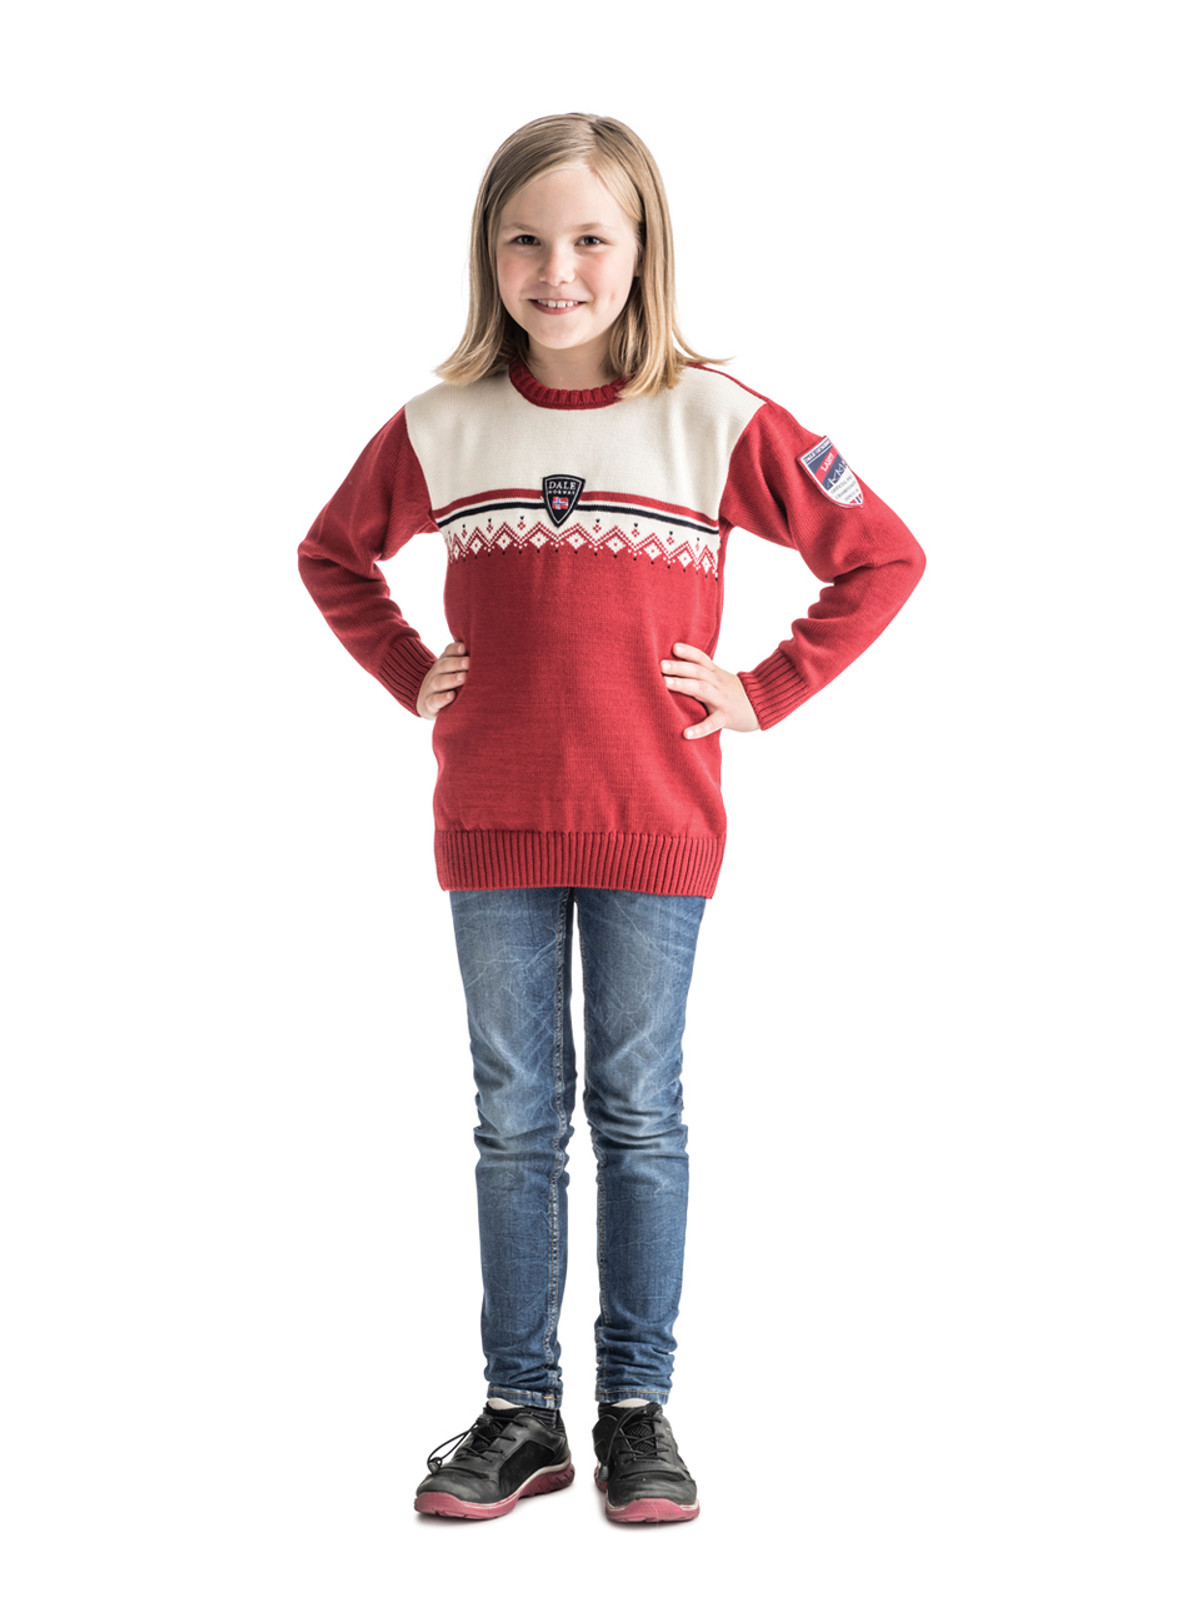 Young Girl wearing Child wearing Dale of Norway, Lahti childrens sweater in Raspberry/Off White/Navy, 93311-B